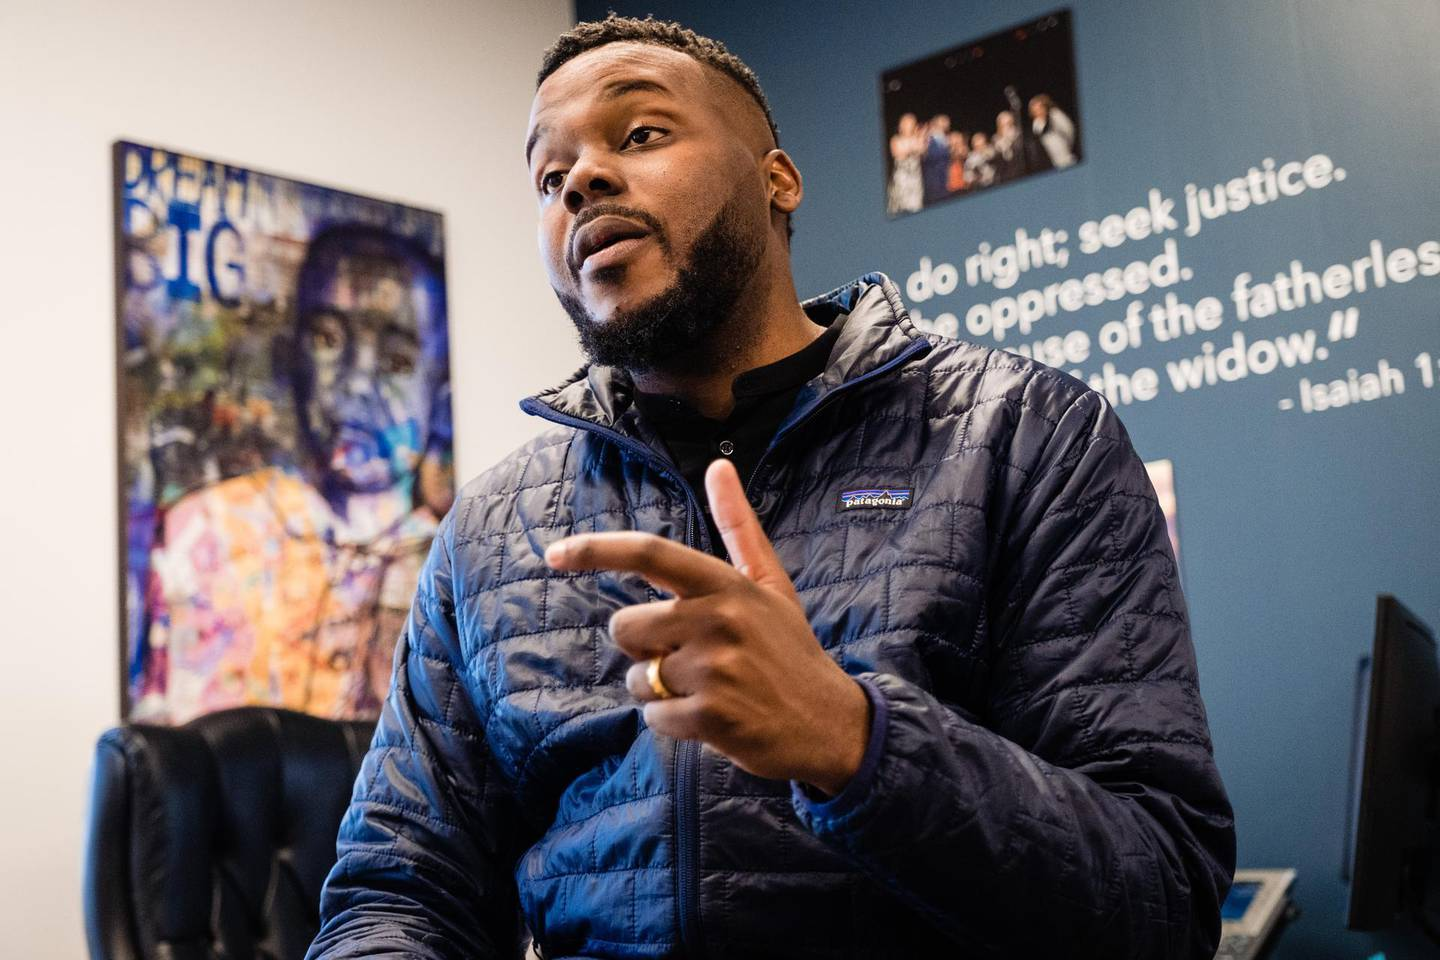 Michael Tubbs, Mayor of Stockton, is seen at his office in Stockton, California on February 7, 2020. - Mayor Tubbs with the help of the Stockton Economic Empowerment Demonstration implemented an18 month trial of Universal Basic Income for 125 residents of his city. The scoffed-at idea of paying everyone a basic income as machines take people's jobs is getting a fresh look as a possible remedy for economies cratered by the coronavirus pandemic. (Photo by Nick Otto / AFP)